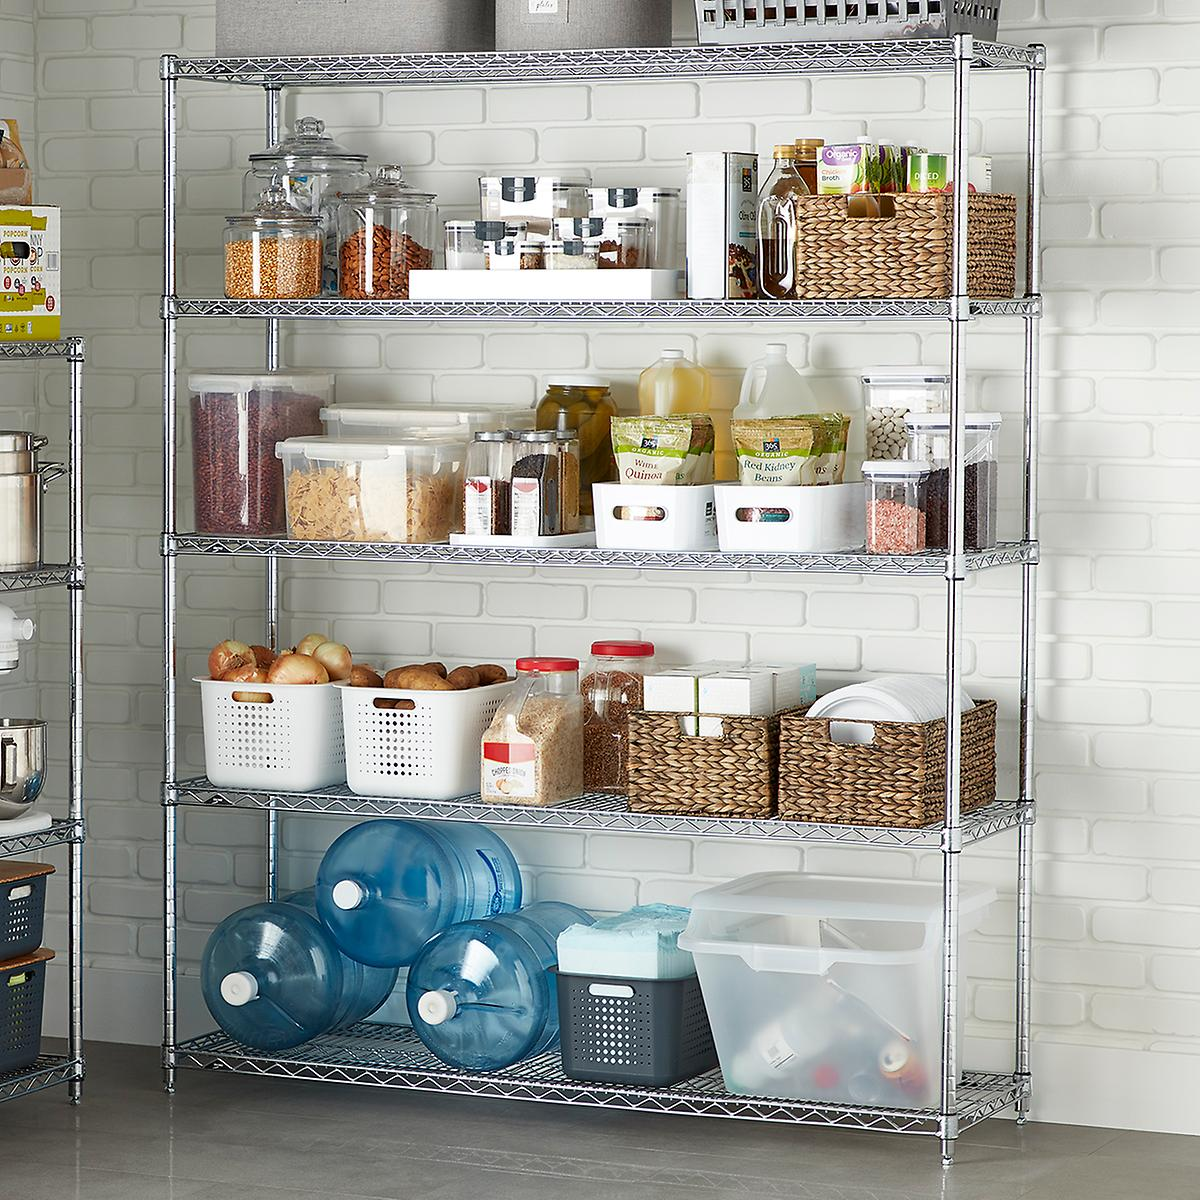 A metal shelving unit pictured in a tiled room or closet, with multiple shelves neatly stacked with canisters and bins of food items